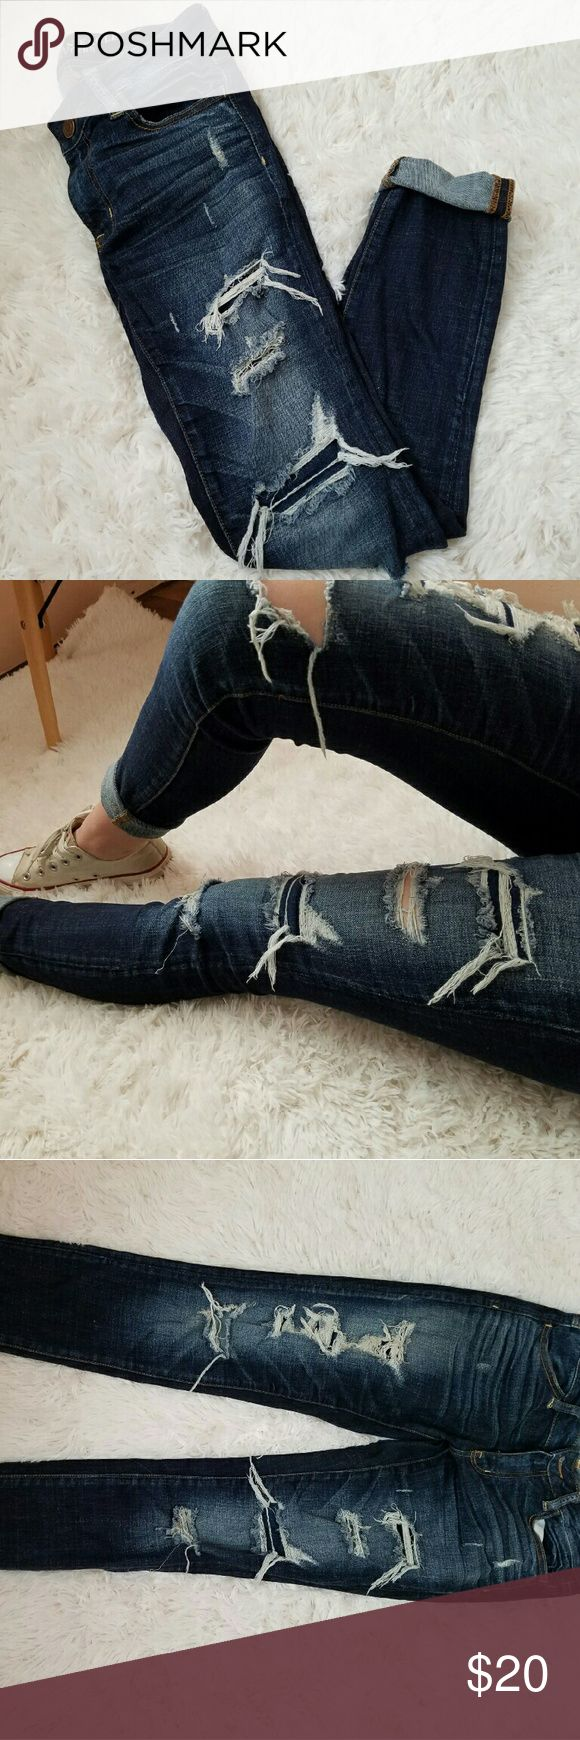 American Eagle jeans Dark denim, ripped, jeggings. Regular length. American Eagle Outfitters Jeans Skinny